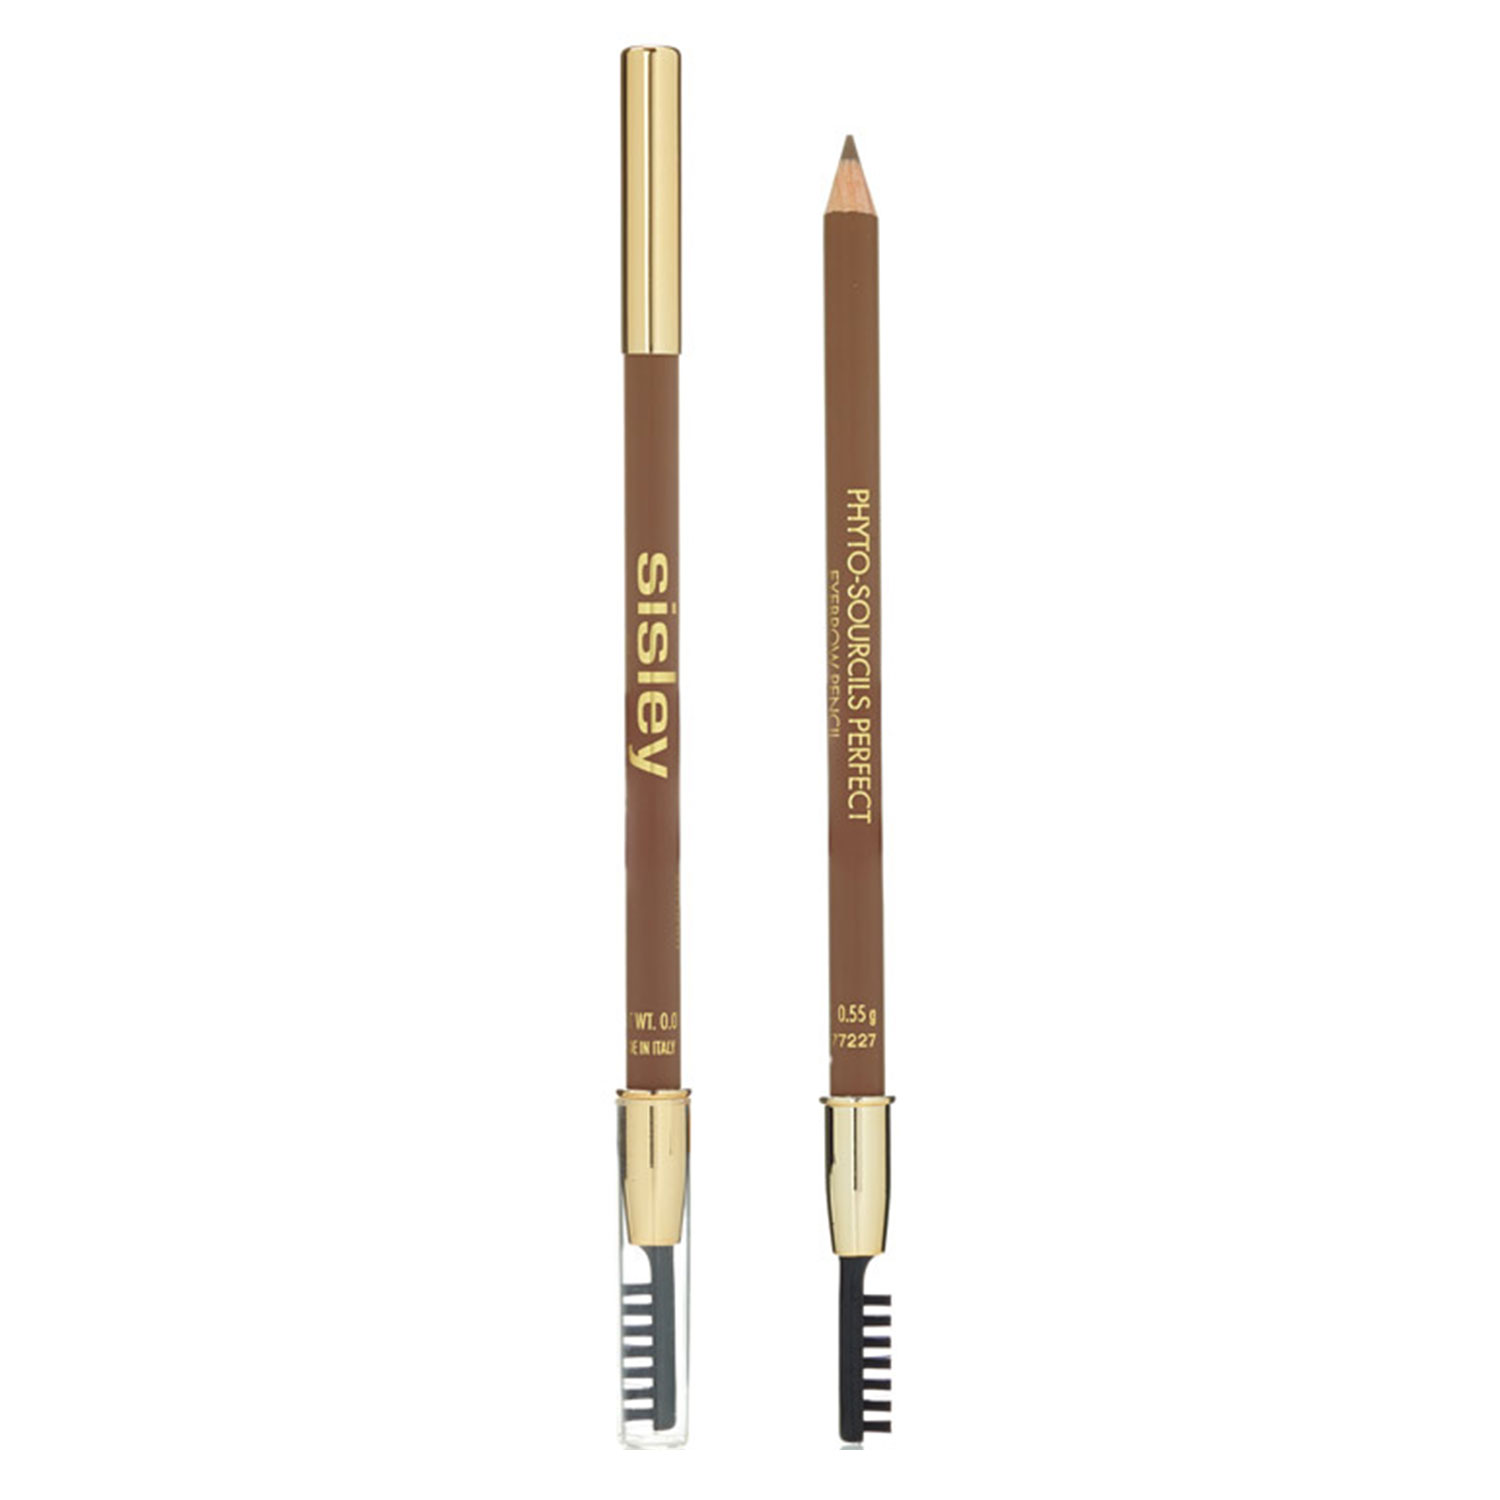 Phyto Sourcils - Perfect Châtain 2